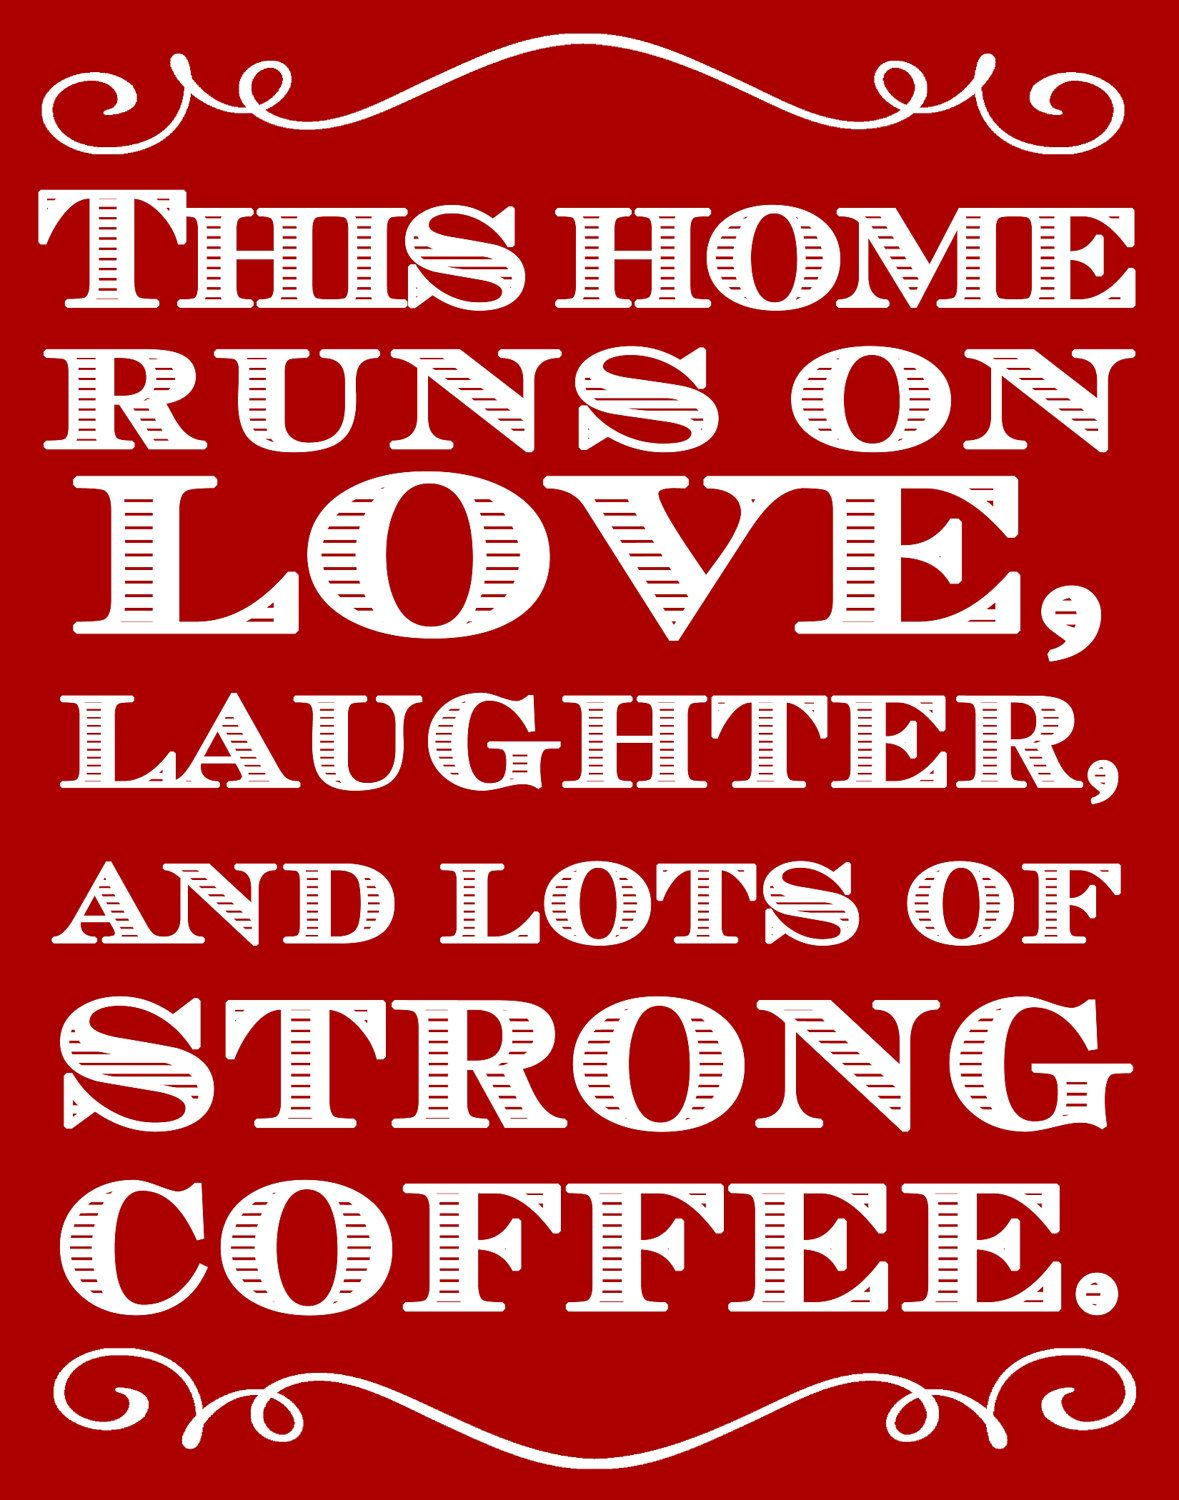 Love Laughter And Coffee That S The Key To A Happy Home Repin If You Agree Coffee Humor Coffee Print Coffee Quotes